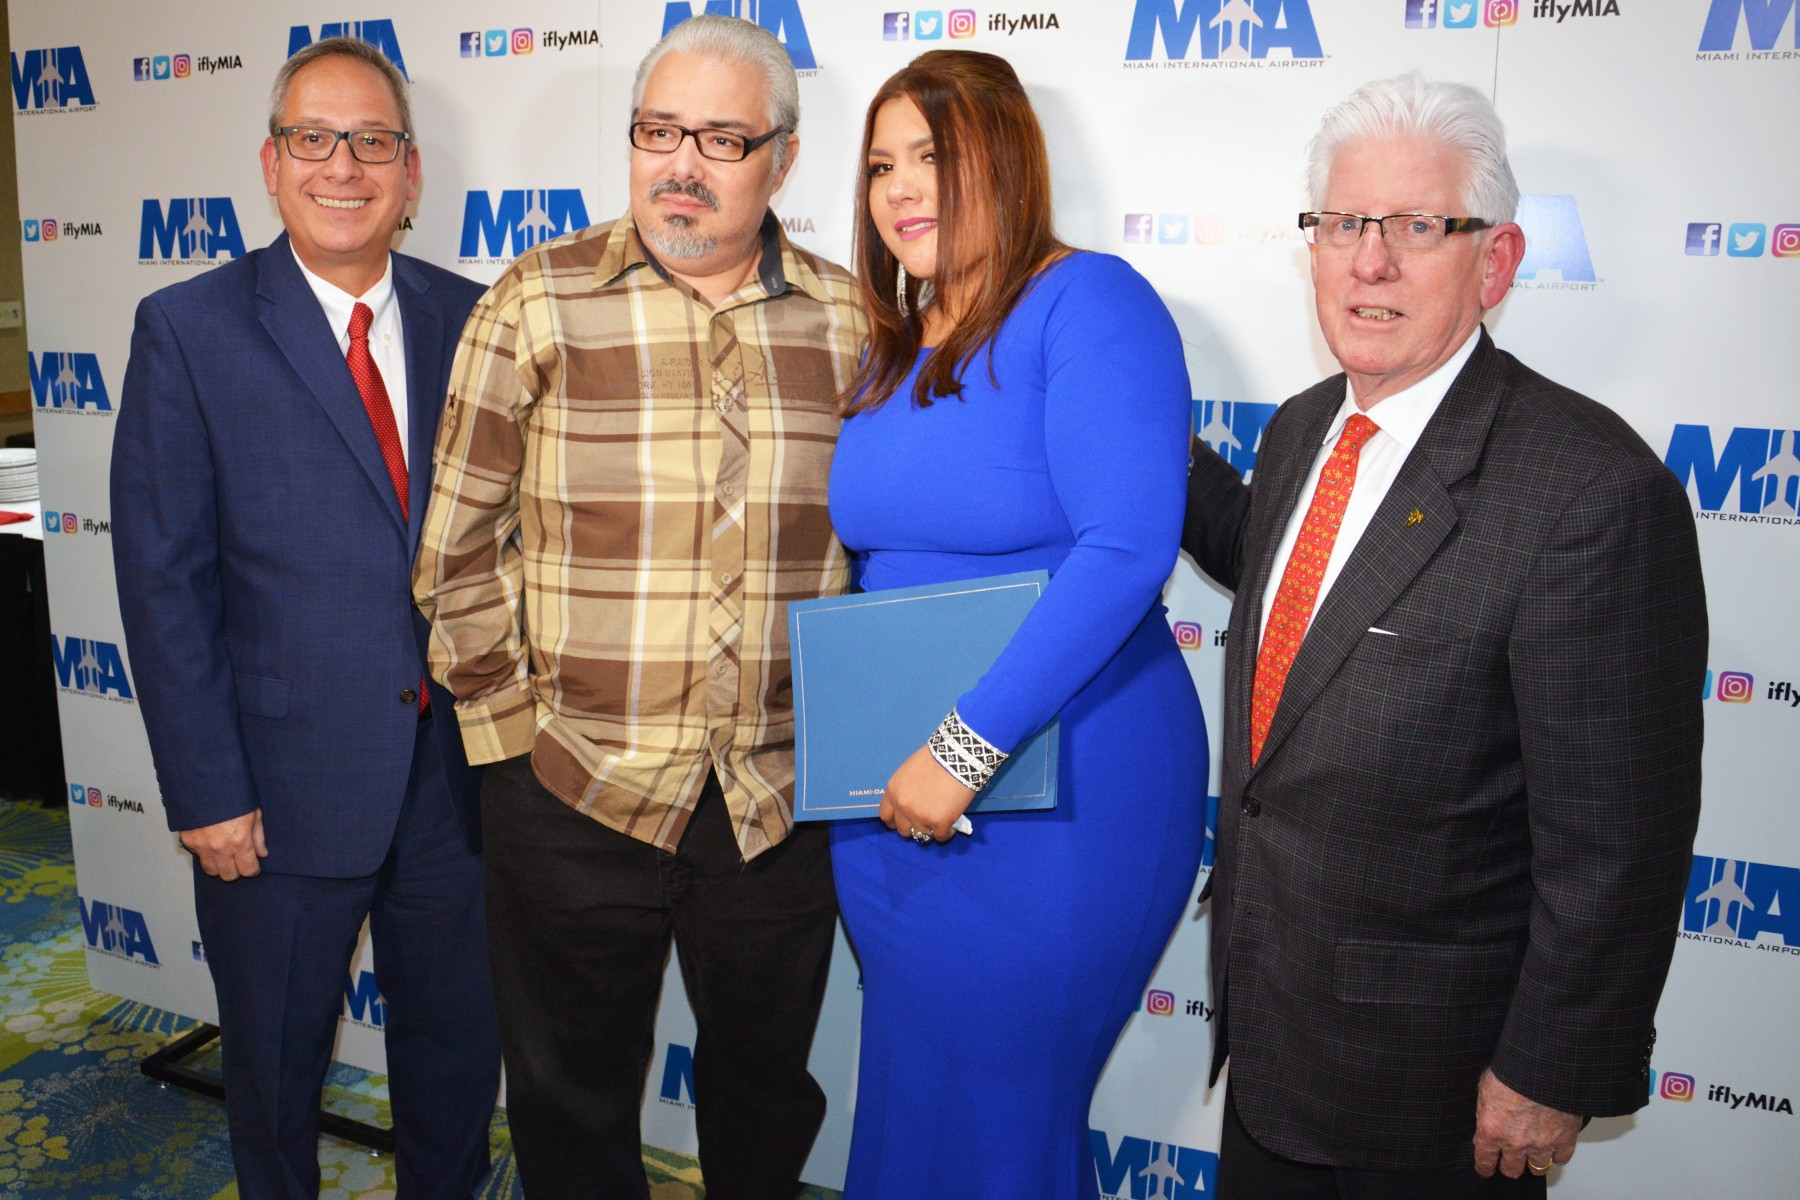 MDAD Director and CEO Lester Sola, cardiac arrest survivor Luis Ramos, MIA Employee of the Year Anabella Zapata, and Bill Talbert, President and CEO, Greater Miami Convention and Visitors Bureau